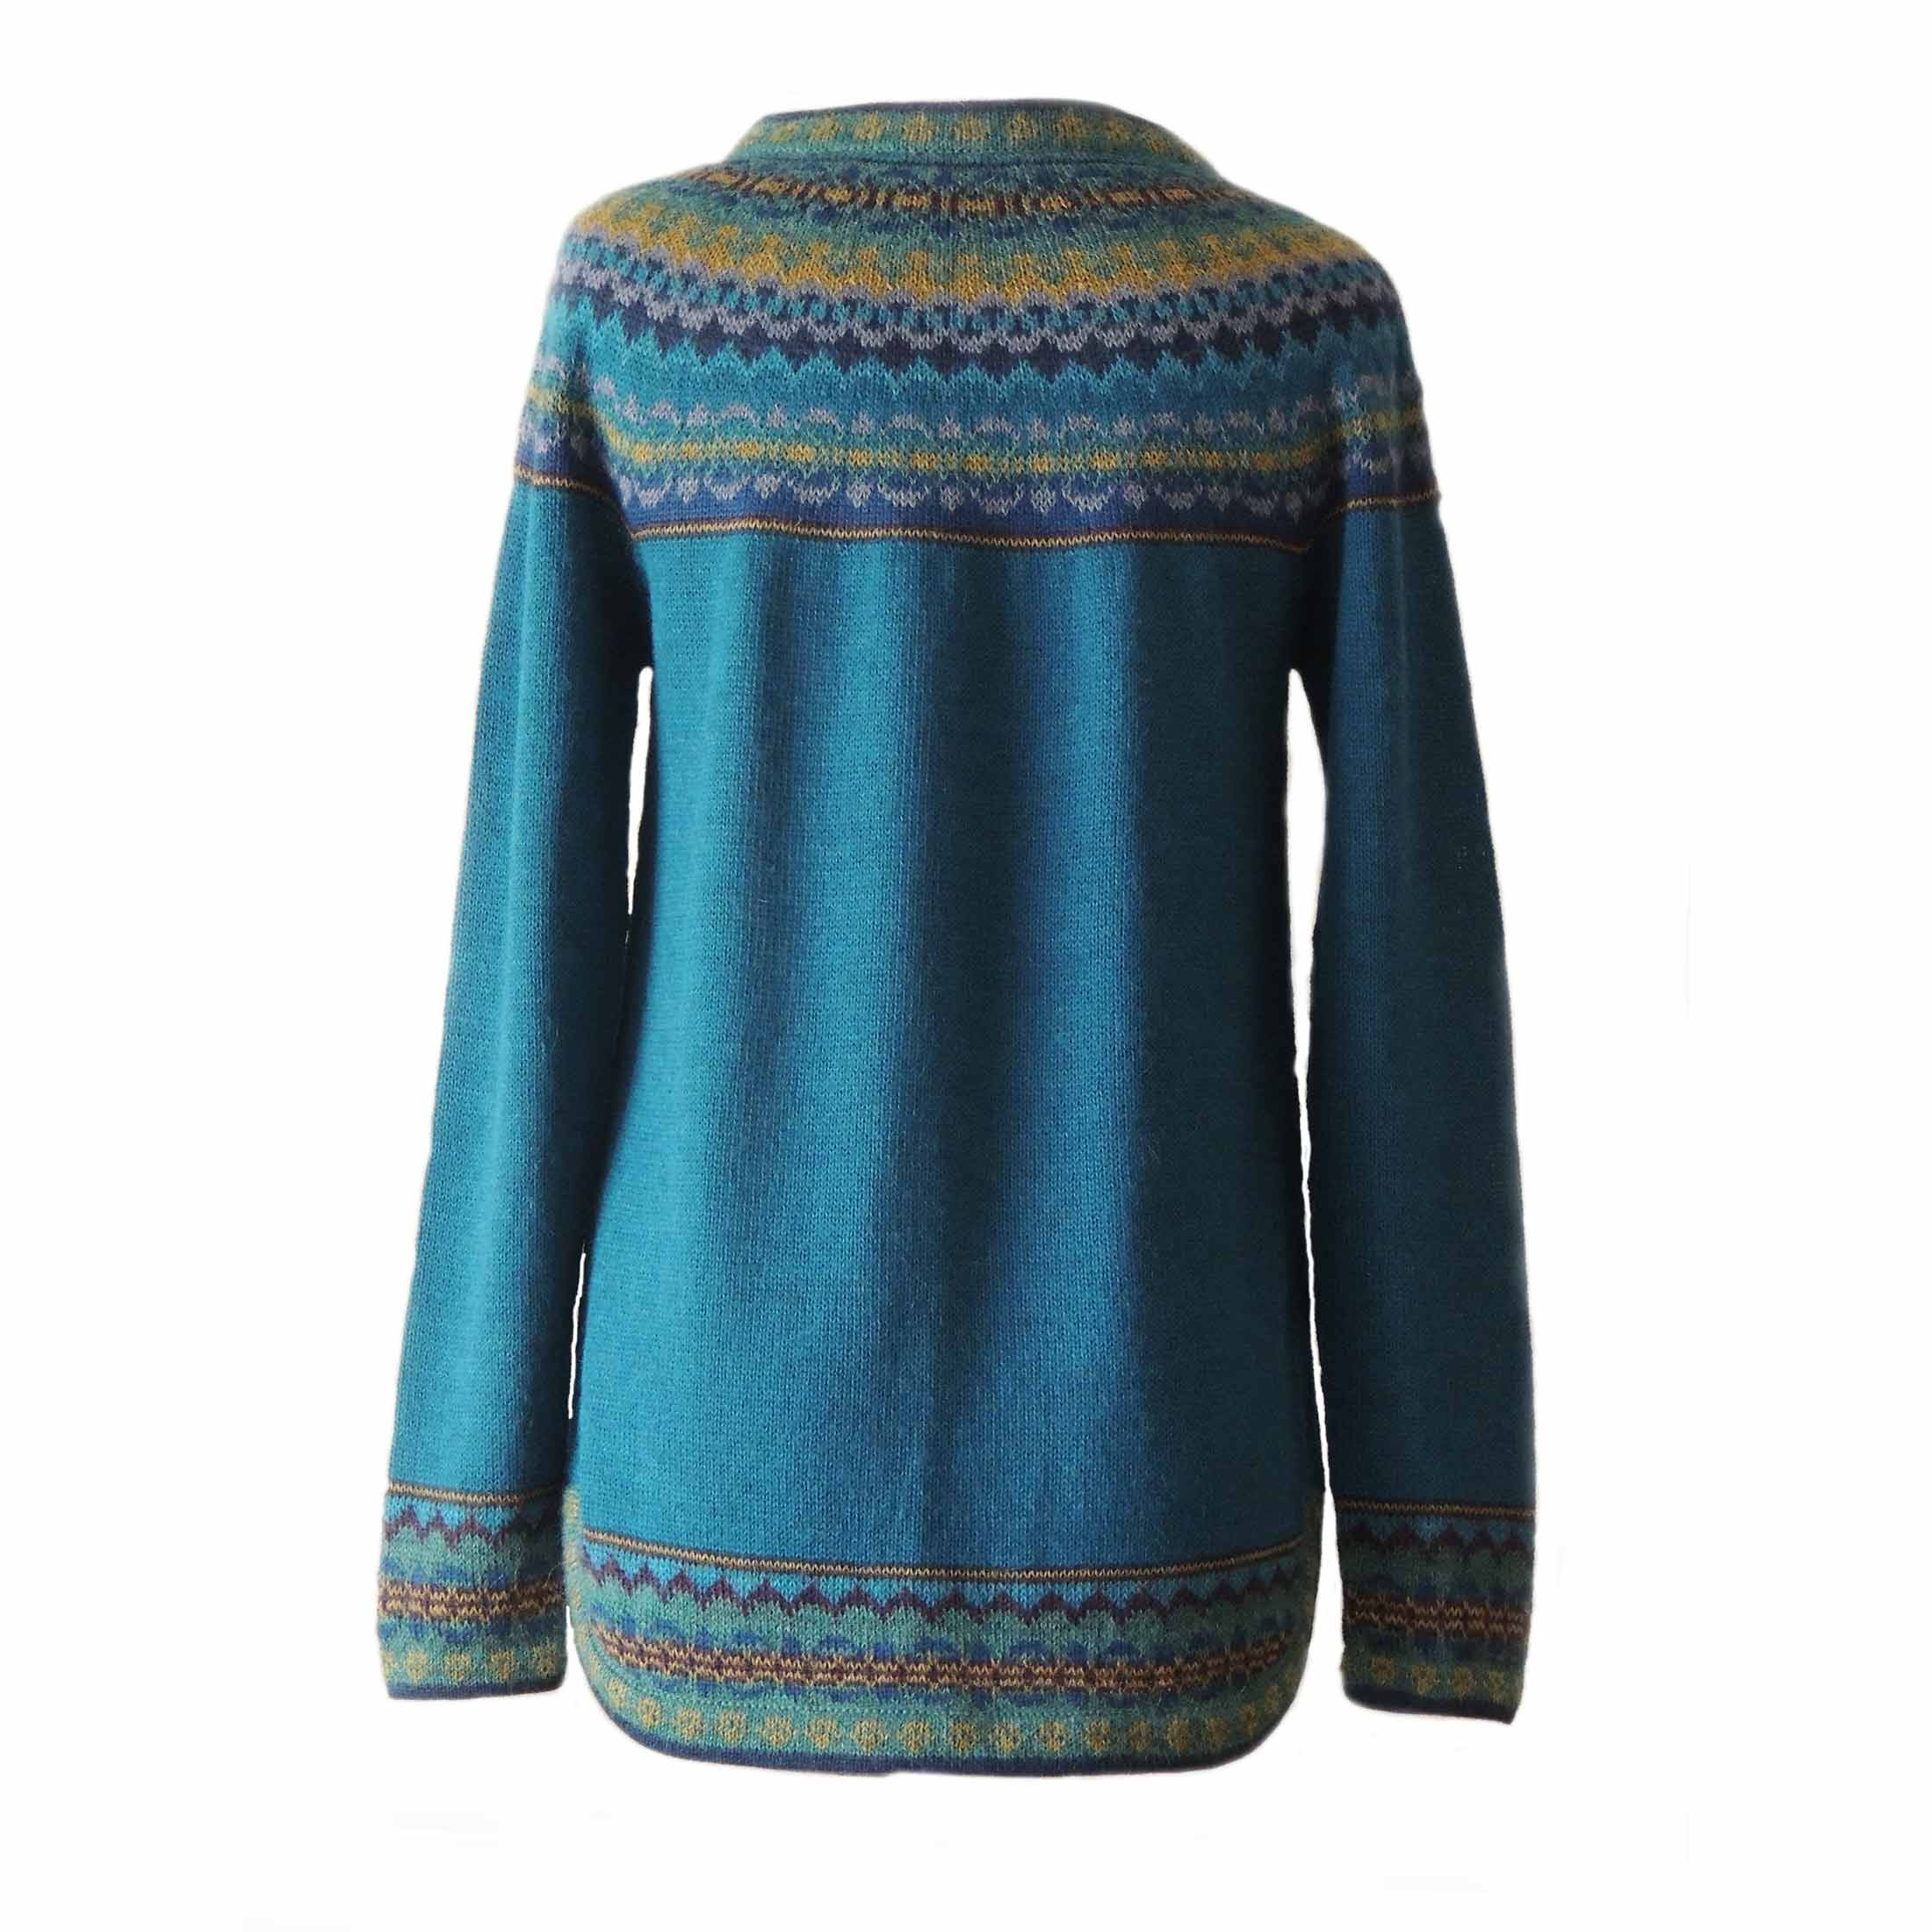 PopsFL knitwear wholesale  women's pullover sweater made in soft 100% alpaca with a symmetrical patterns in amber and different shades